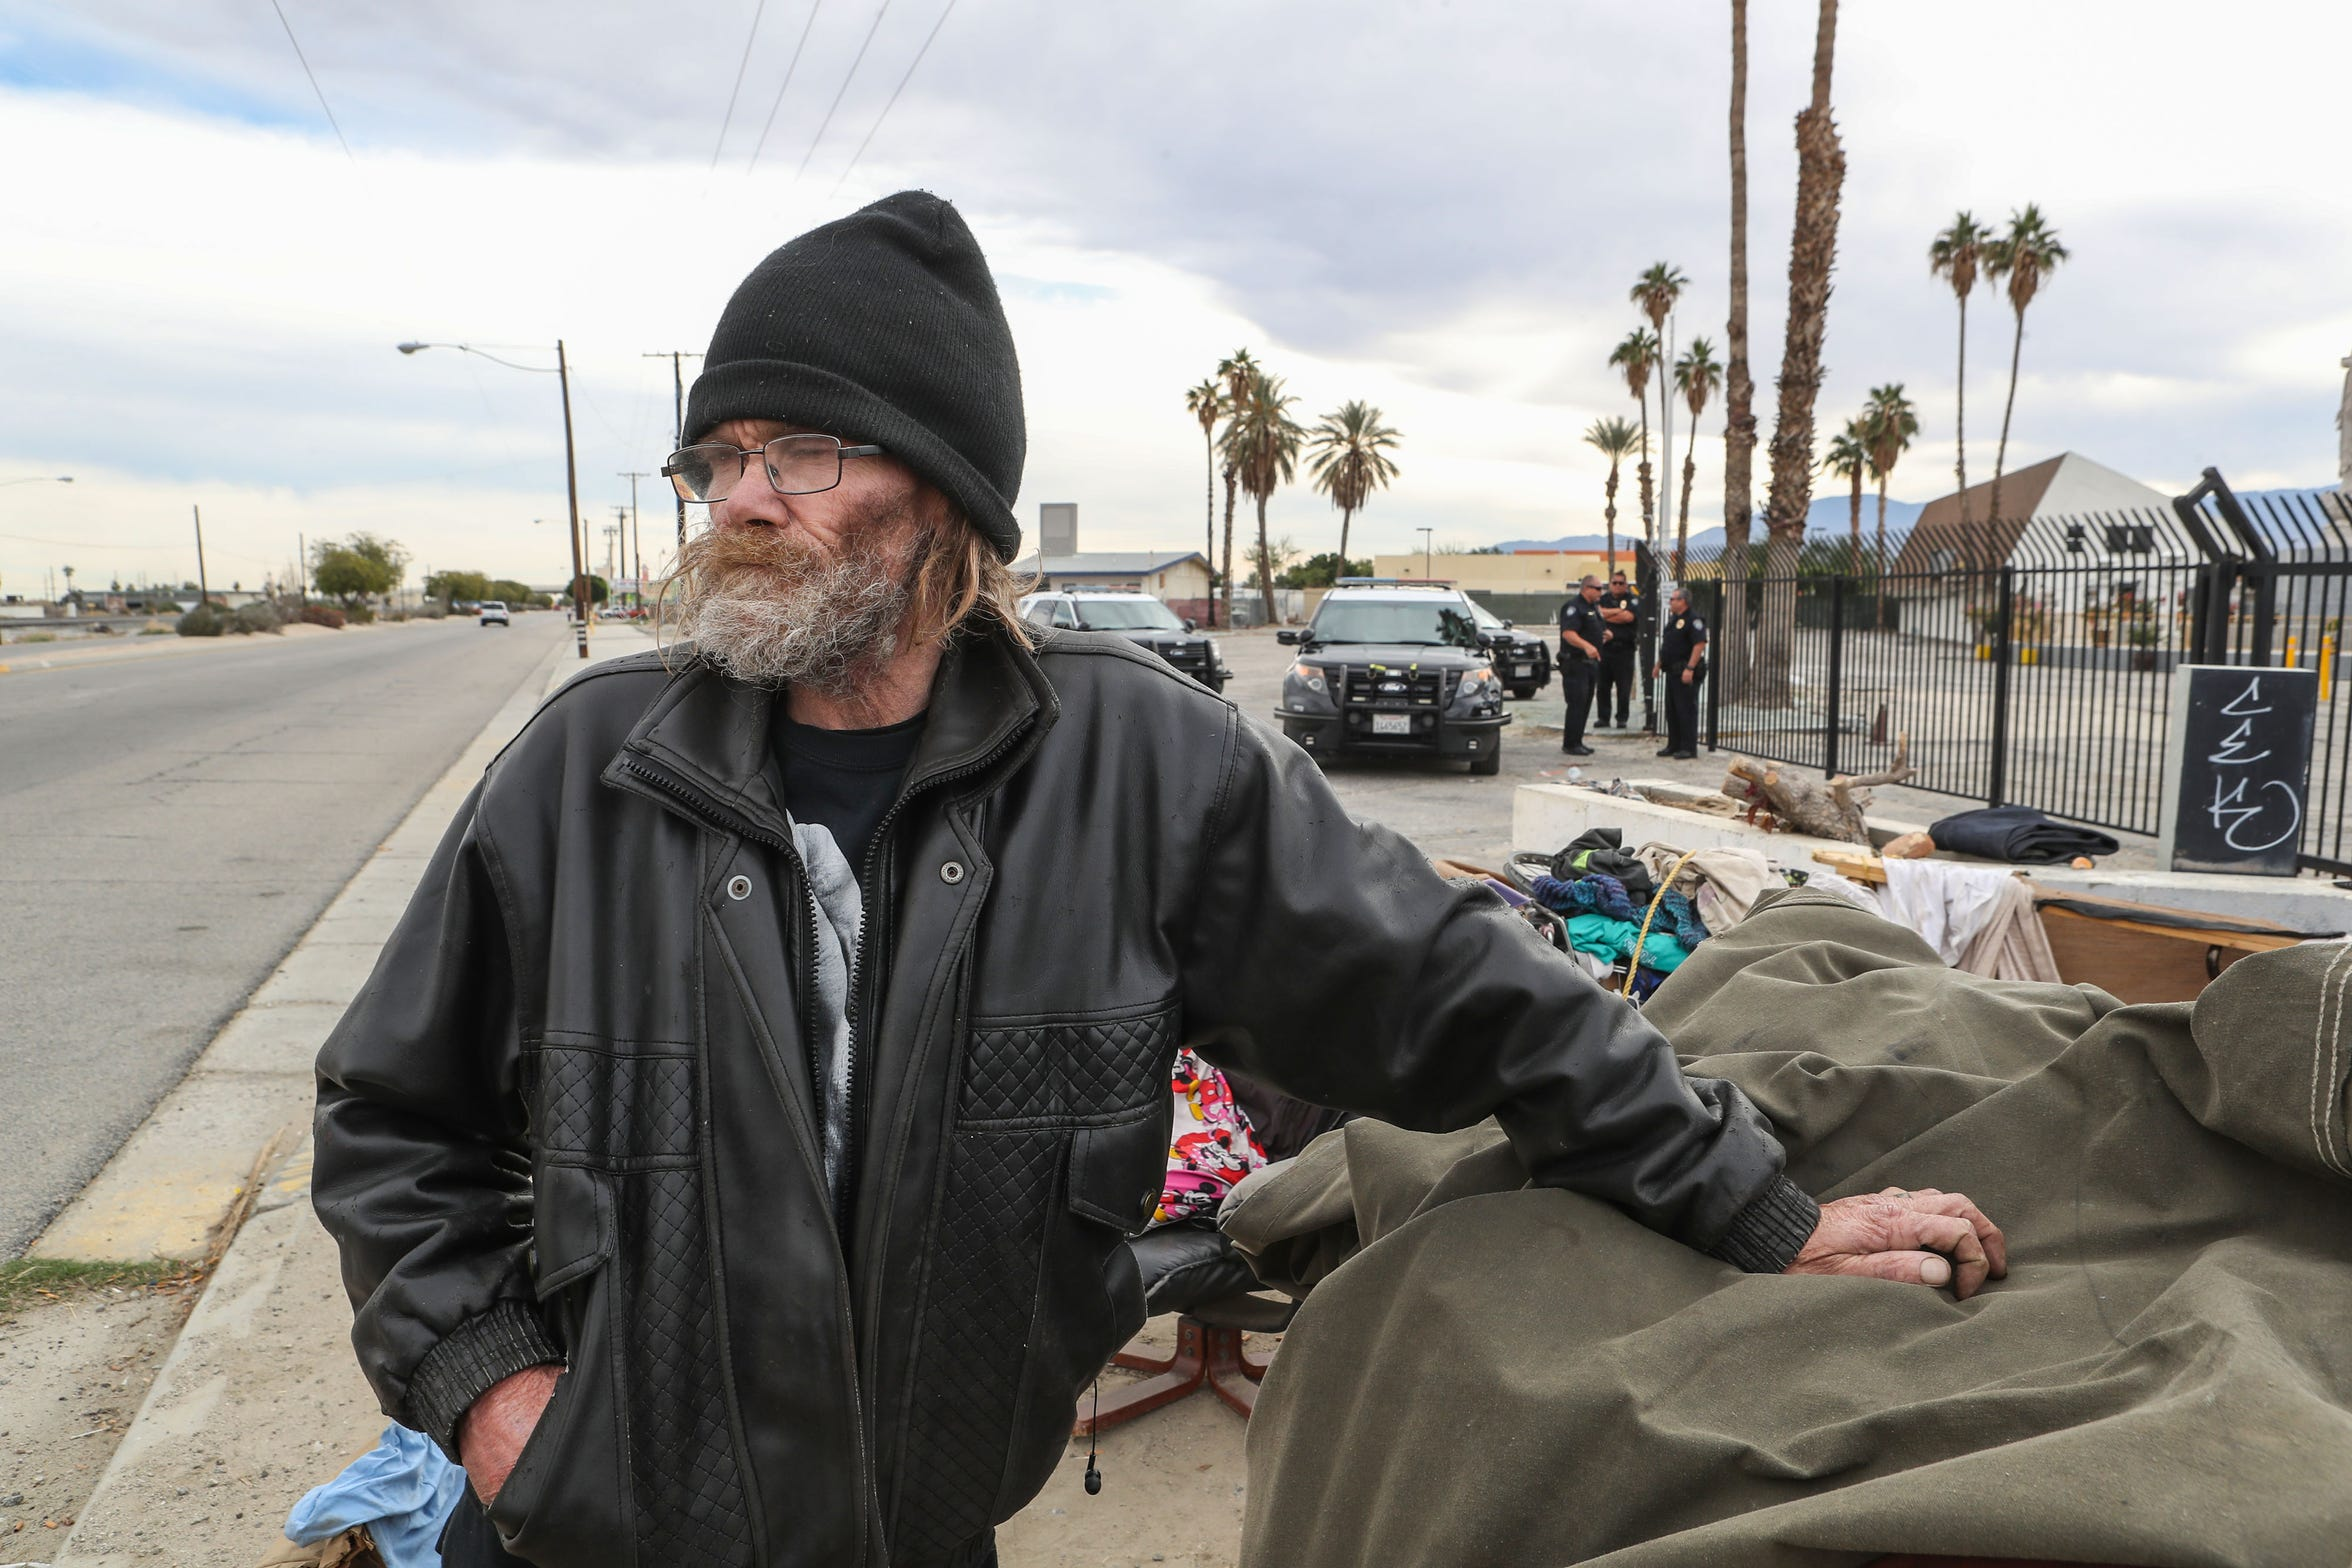 Lauren Strait talks about life living on the streets of Indio shortly after the Indio Police informed him he would need to move his encampment off the side of Highway 111 in Indio, December 18, 2019.